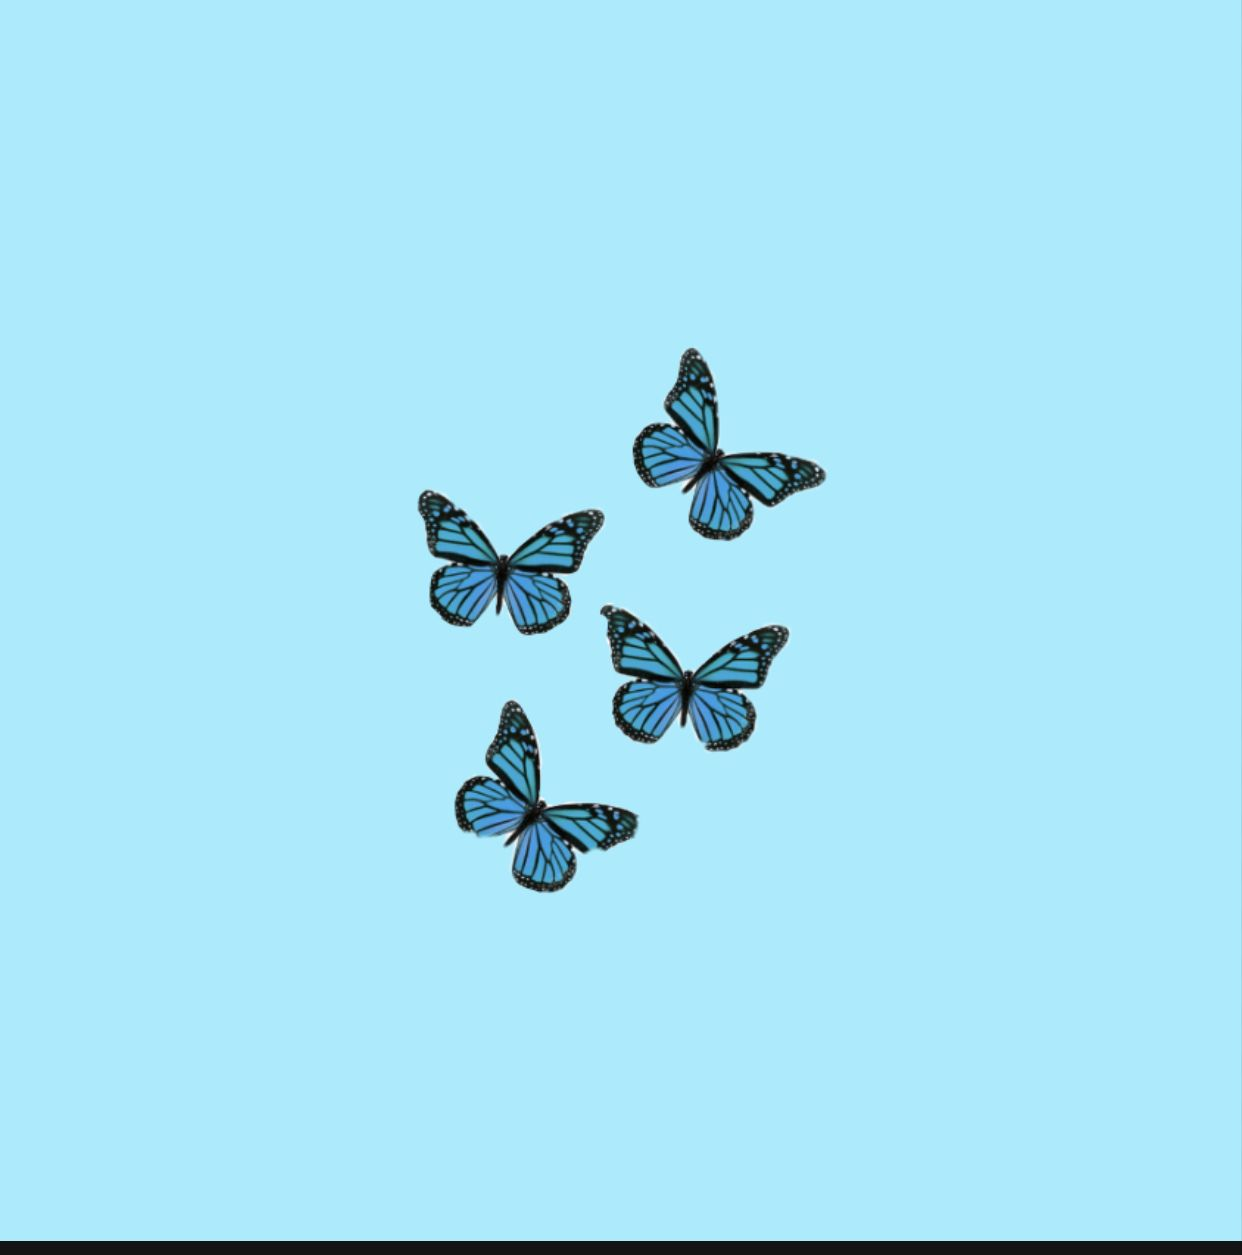 Aesthetic Butterfly Wallpaper Blue Butterfly Wallpaper Butterfly Wallpaper Iphone Baby Blue Aesthetic